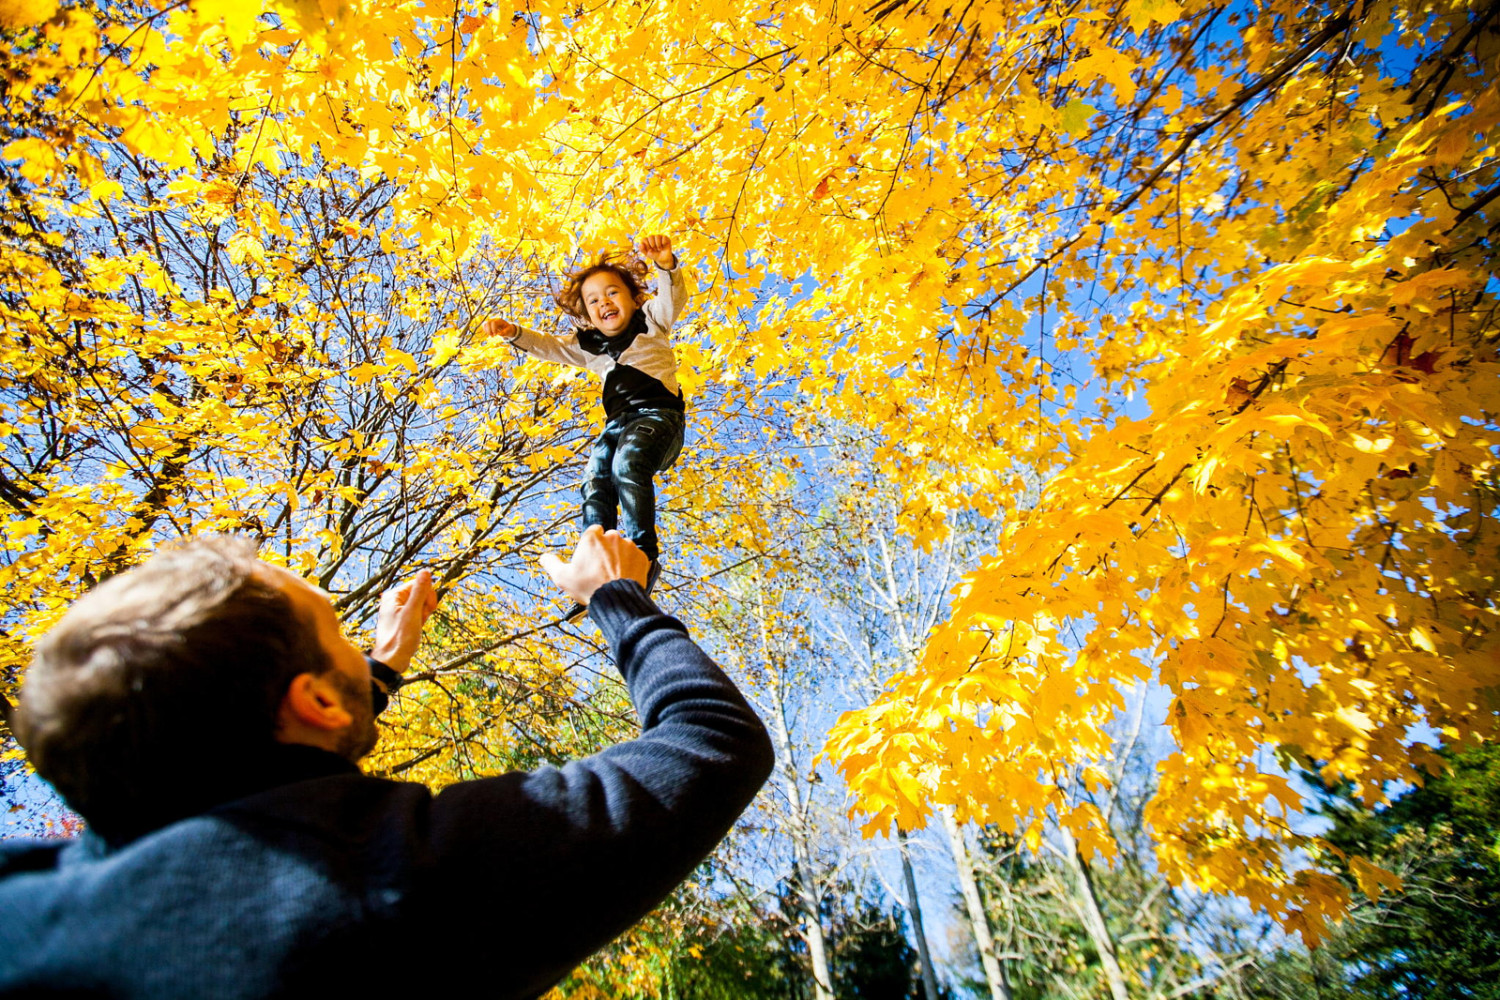 27 Photos that Will Help You Fall in Love with Fall - 500px